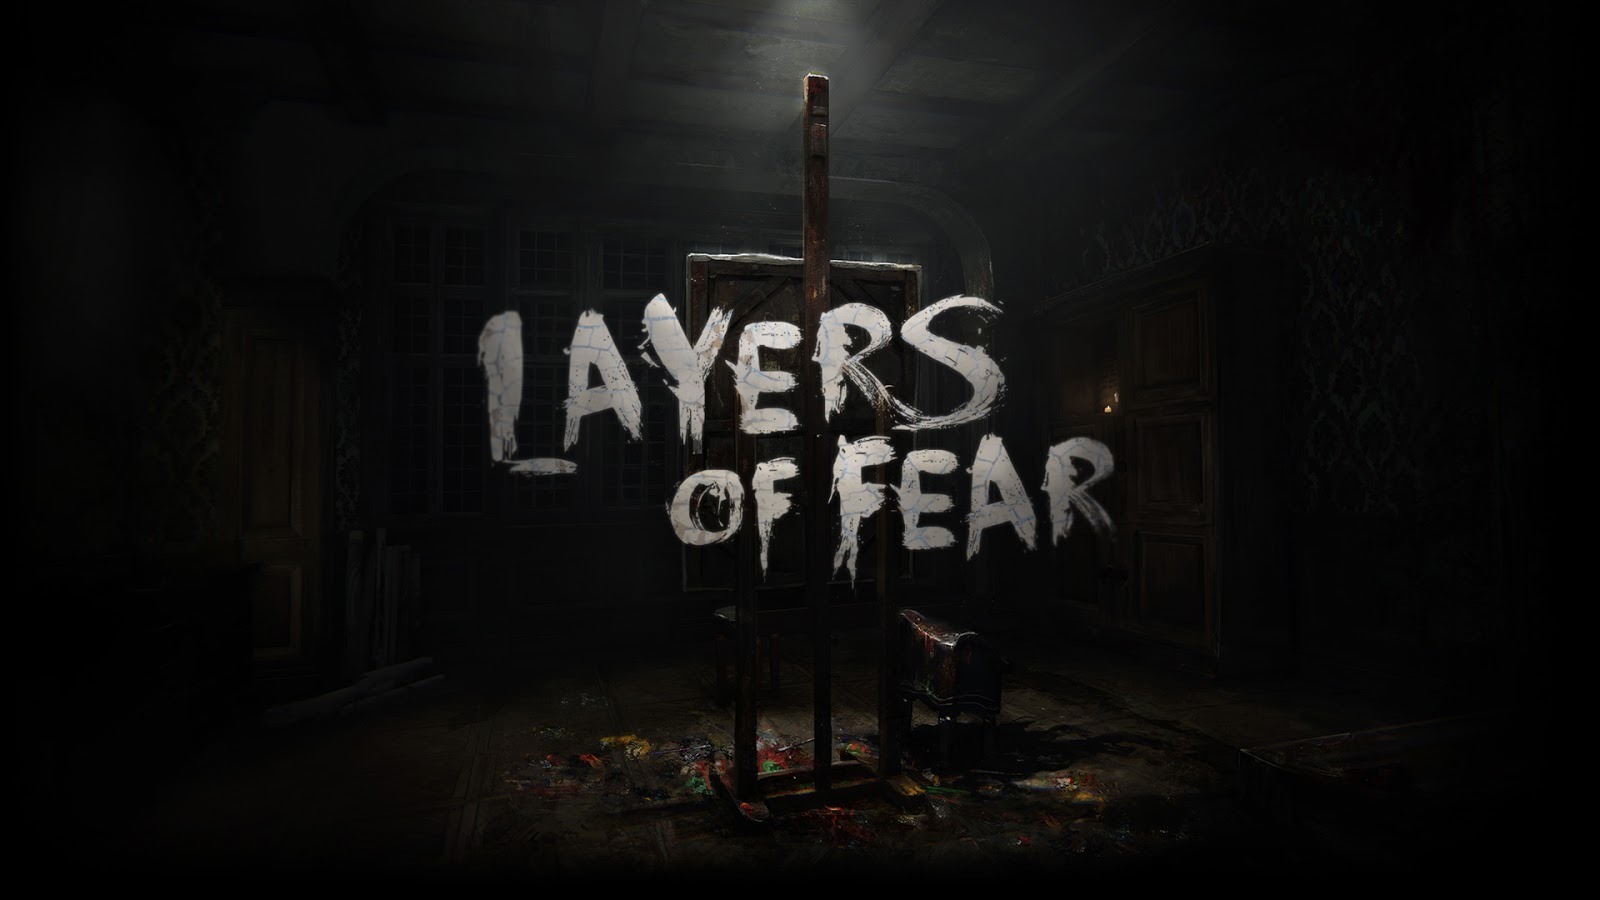 Programa 10x19 (17-03-2017) 'Layers of Fear'   Layers-of-fear